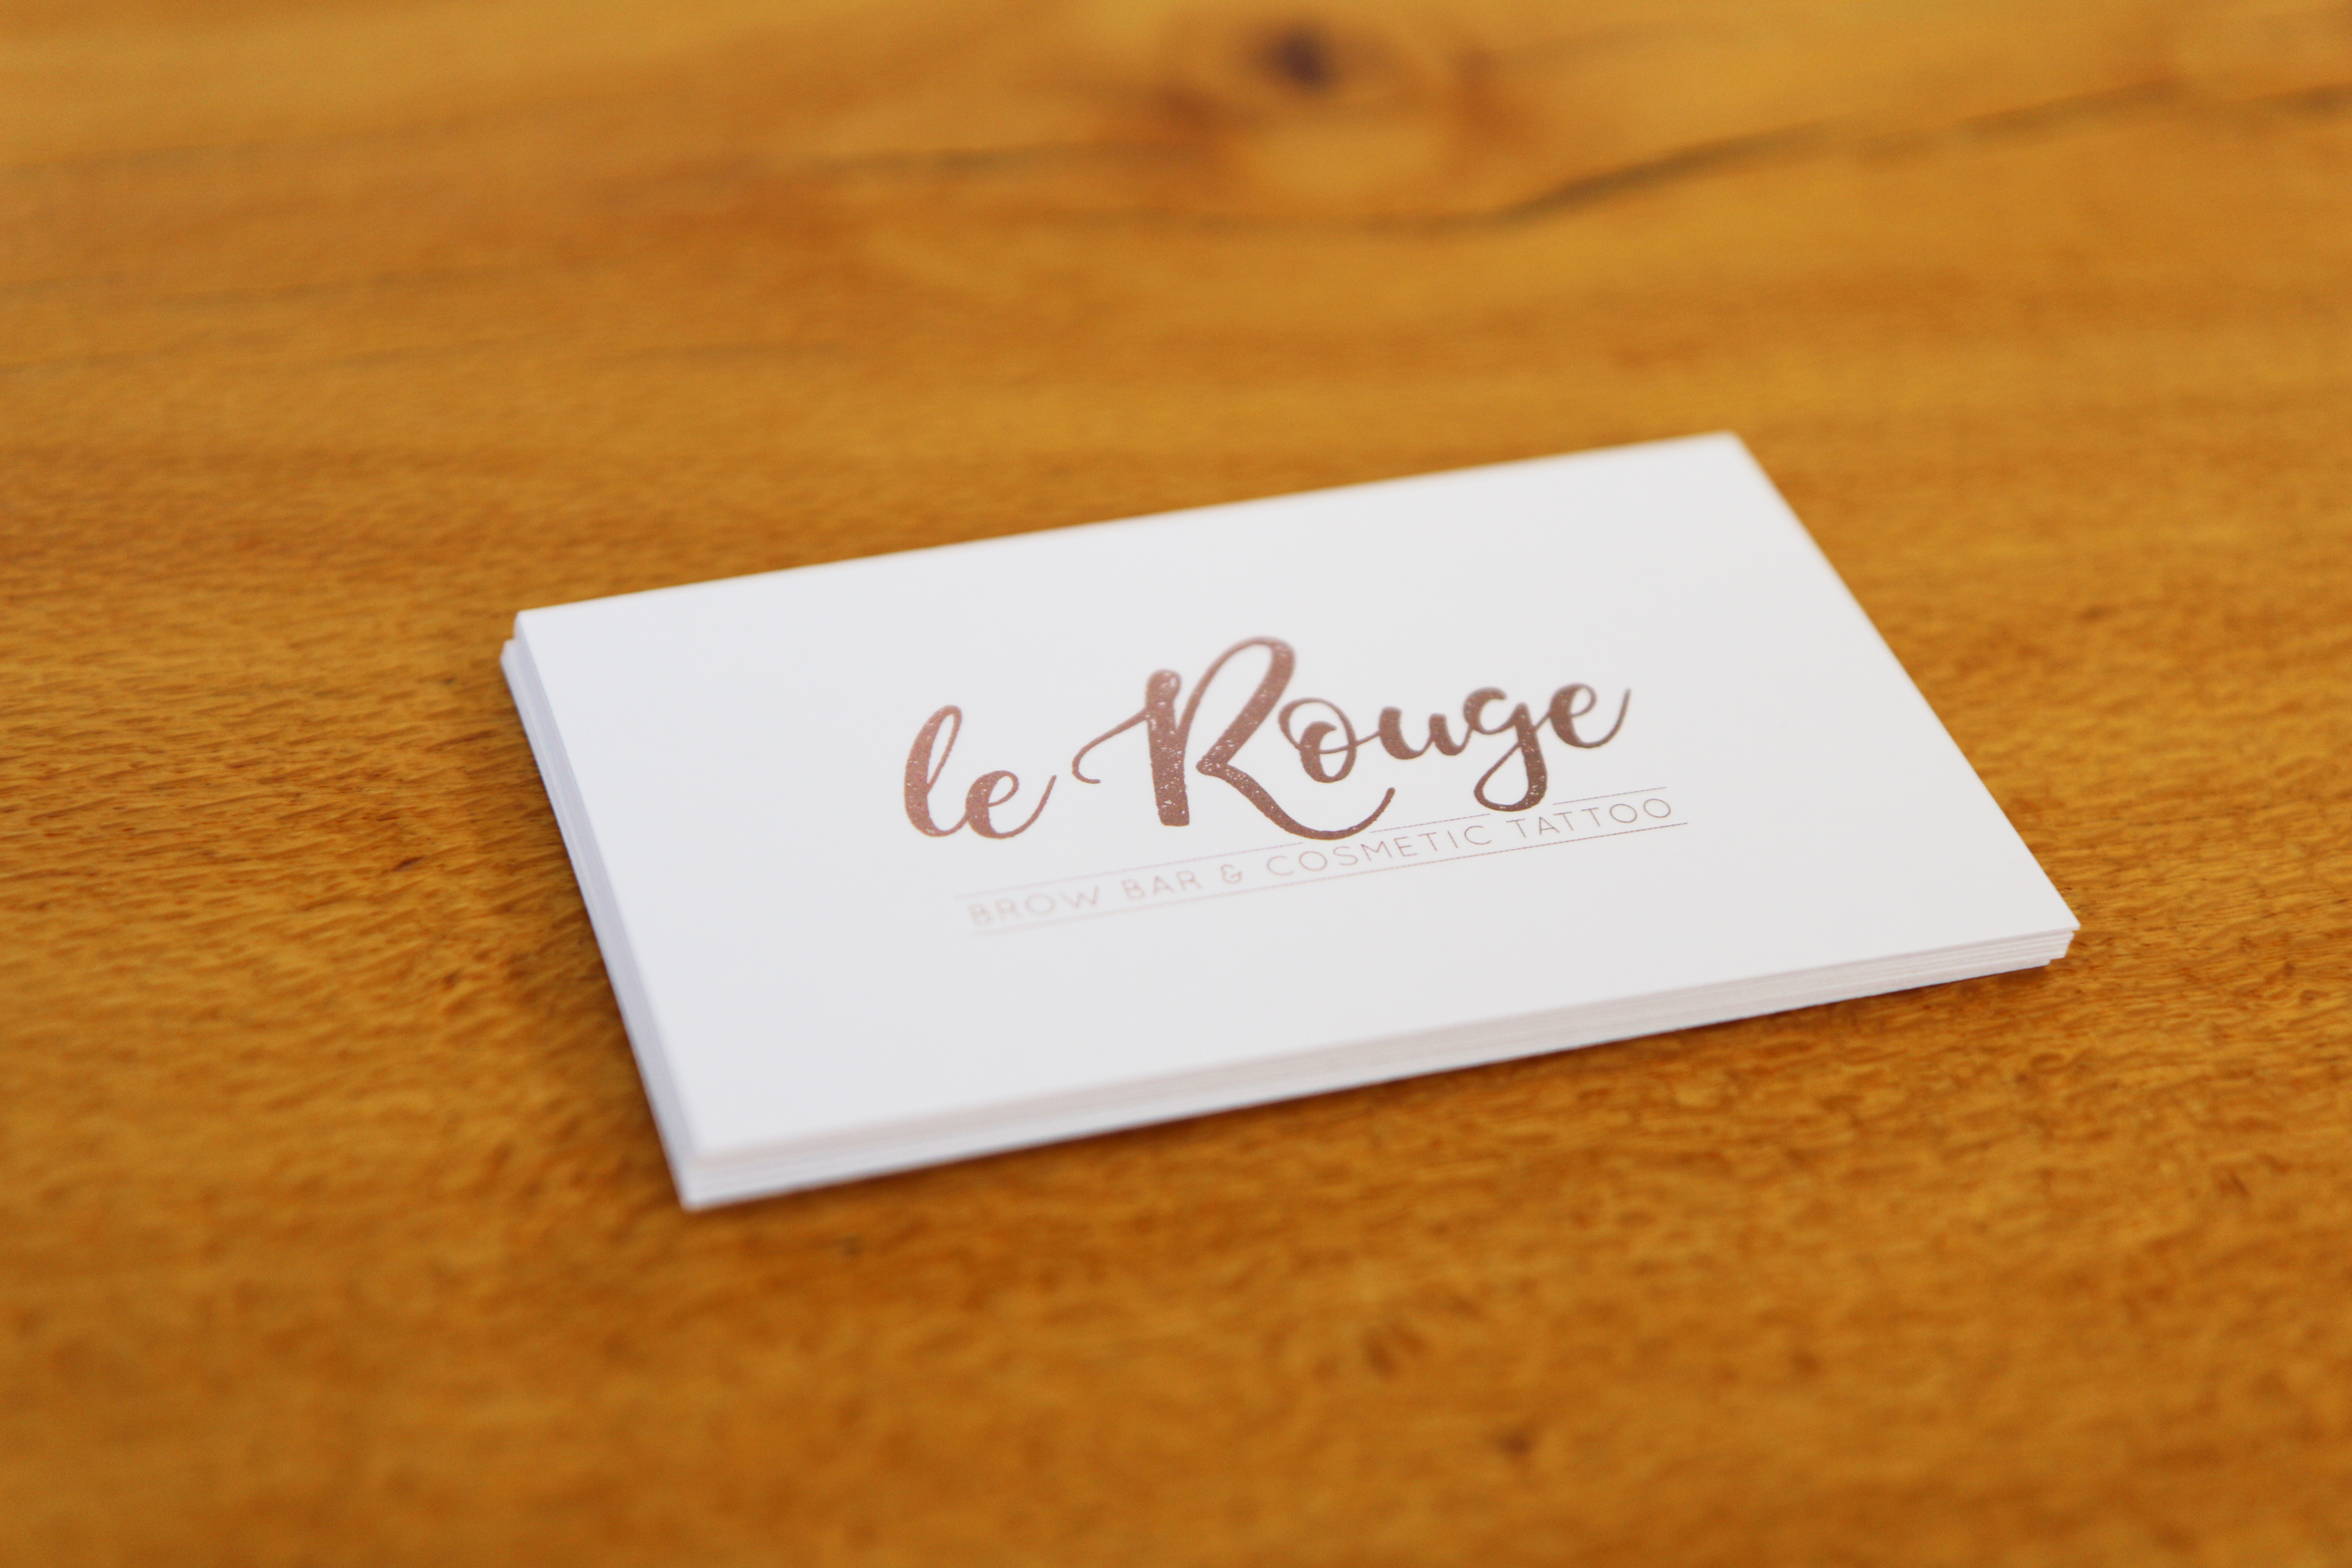 Business cards newcastle the yard creative le rouge business card design newcastle nsw graphic design le rouge business card design newcastle nsw graphic design reheart Image collections